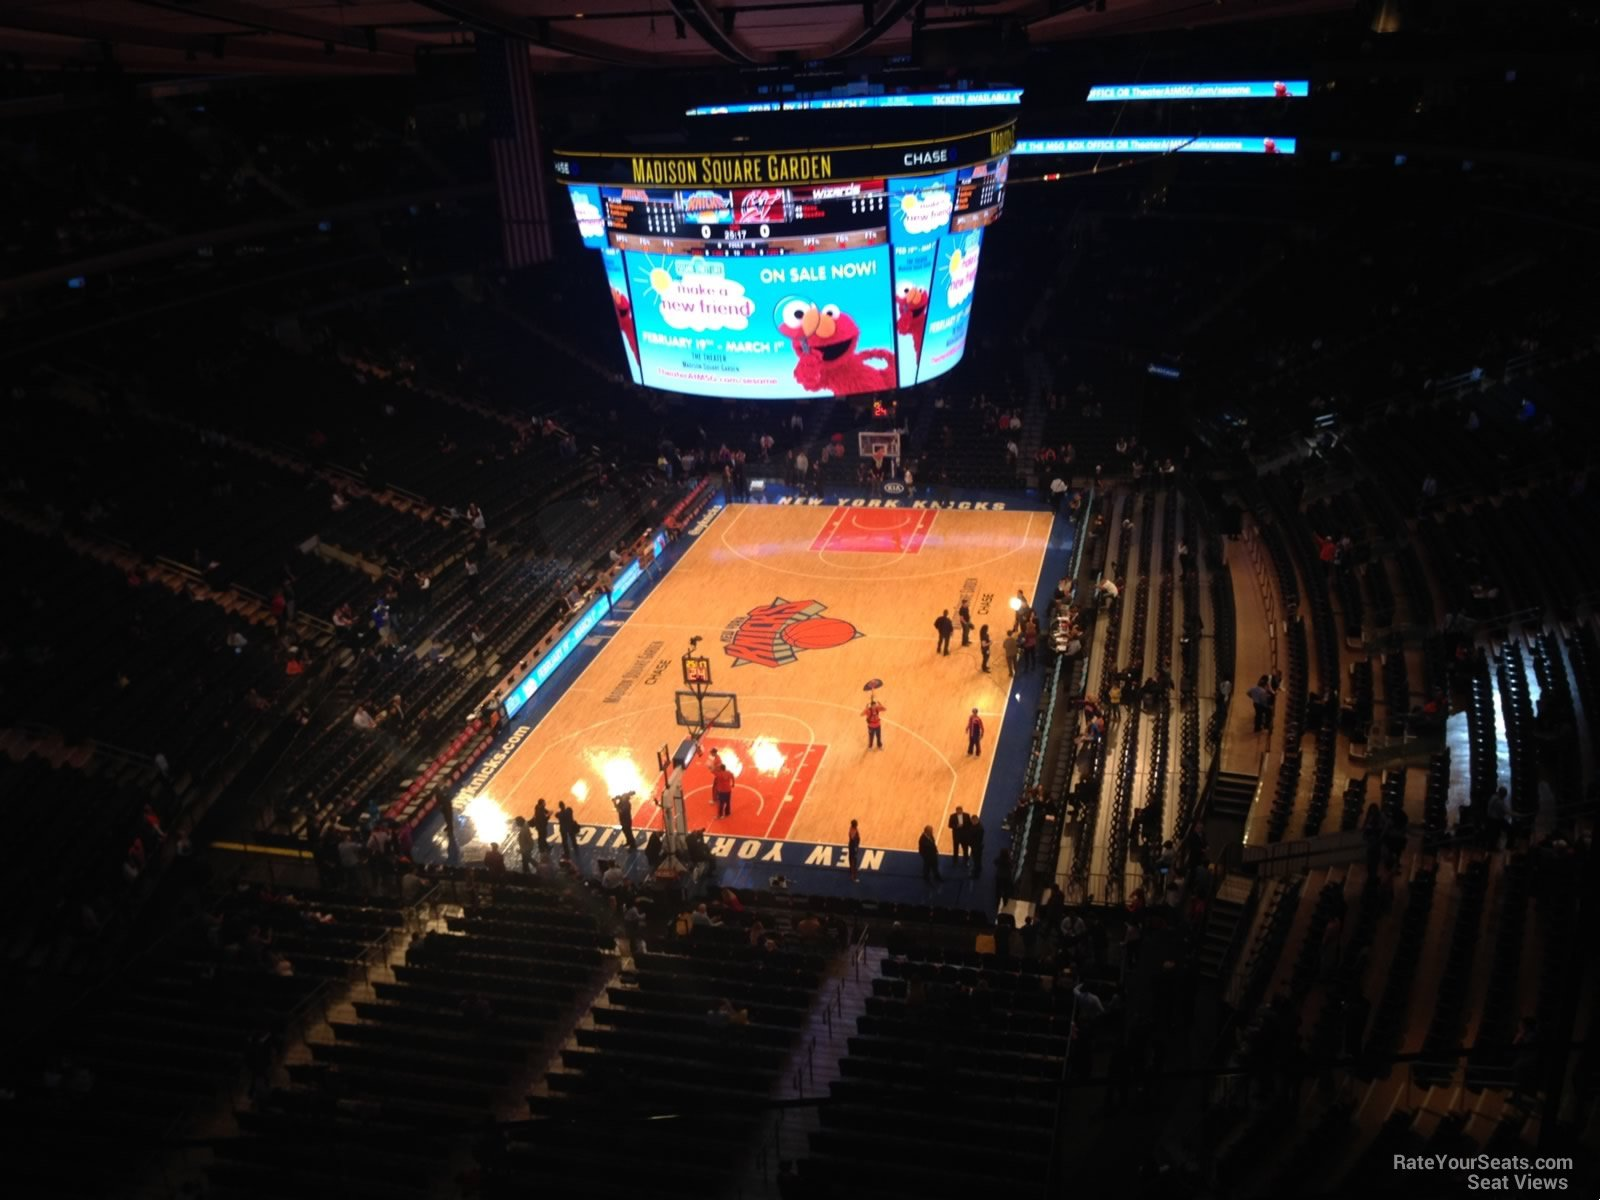 Madison square garden section 321 new york knicks Madison square garden basketball